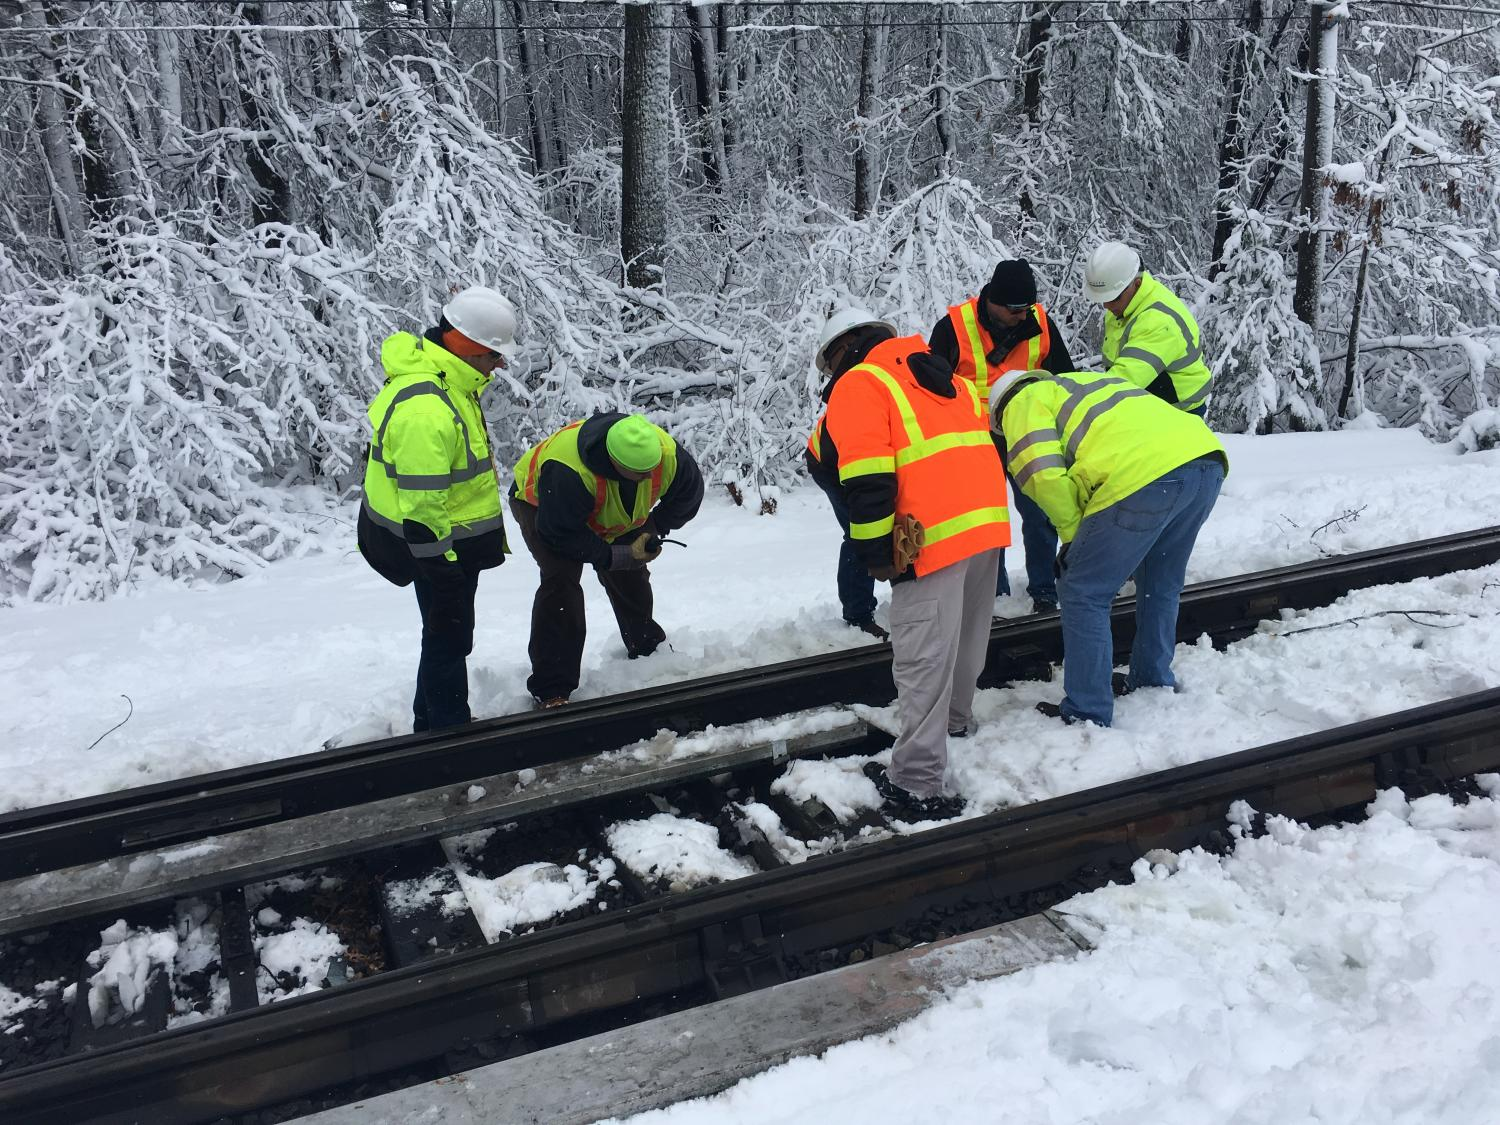 A crew inspects the tracks